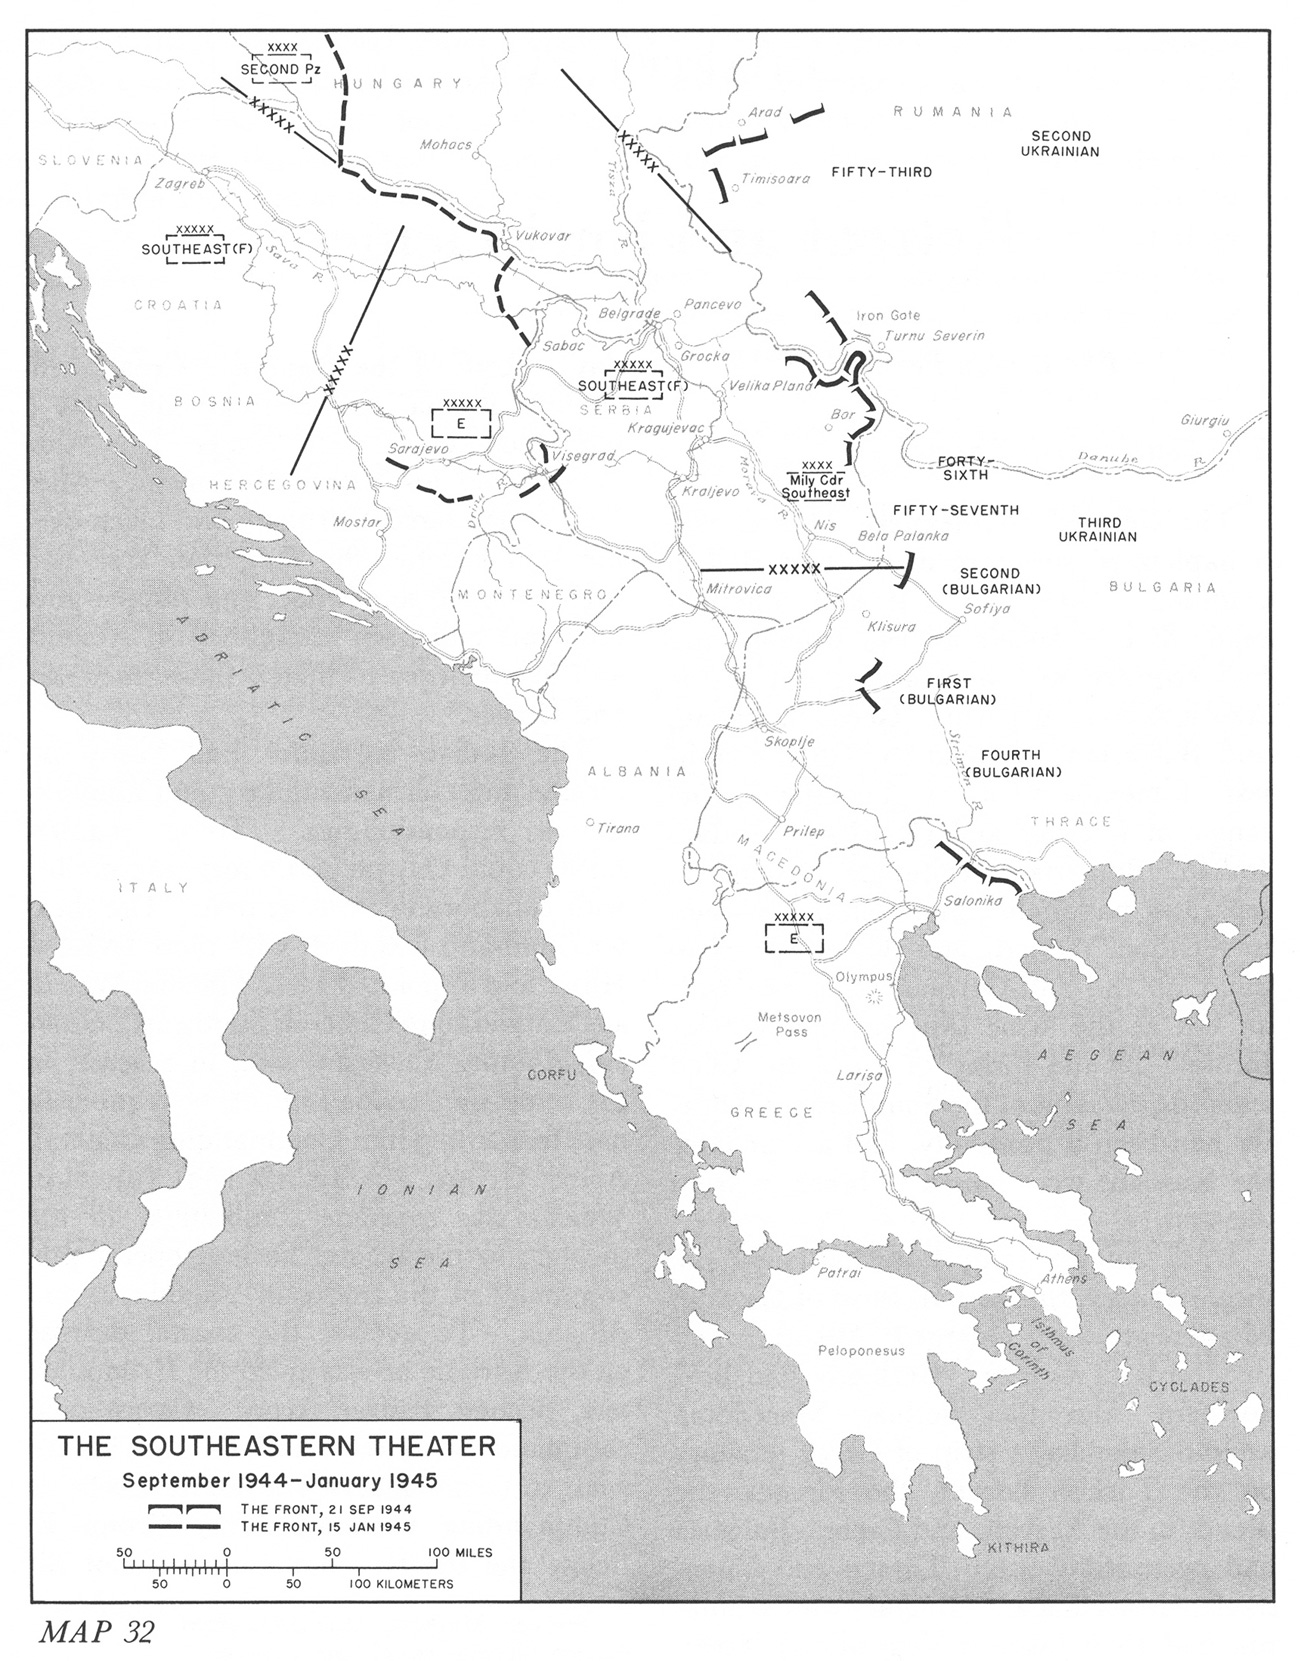 hyperwar stalingrad to berlin the german defeat in the east Asia Minor Map map 32 the southeastern theater september 1944 january 1945